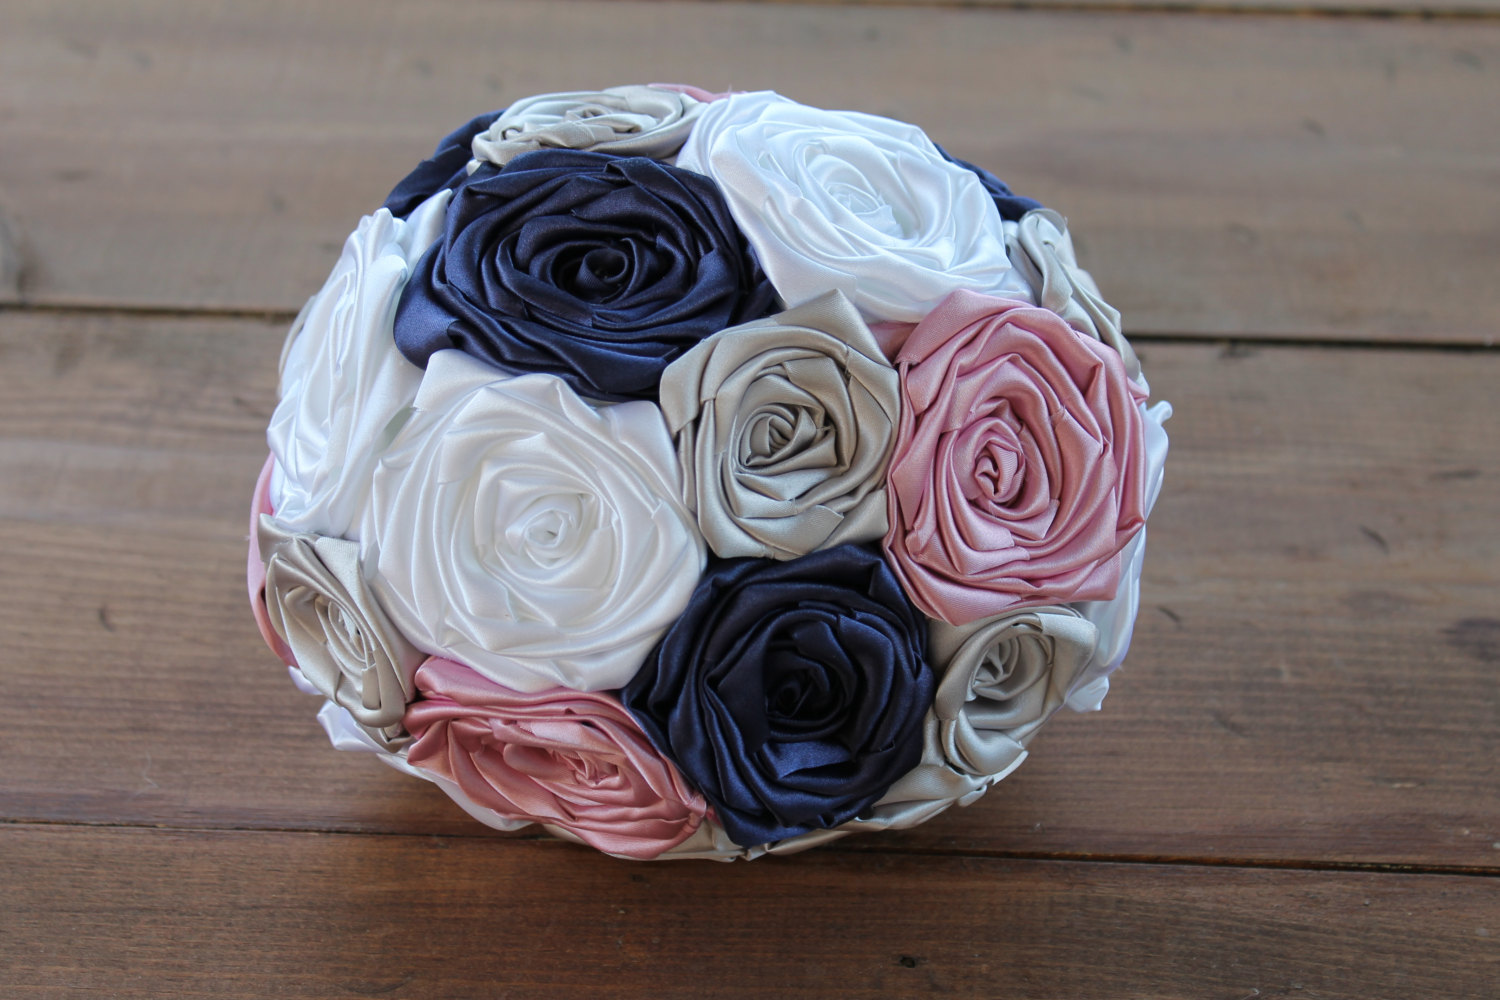 Fabric bridal bouquet by Hey Bouquet | http://etsy.me/2jw3WX0 | via https://emmalinebride.com/bride/fabric-bridal-bouquet/